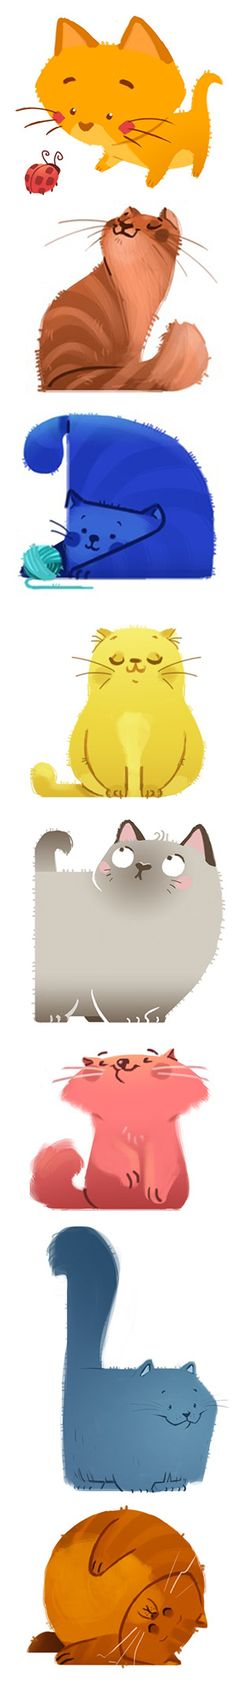 kitties... § Find more artworks: www.pinterest.com/aalishev/ Like us on Facebook: https://www.facebook.com/inspirationpins